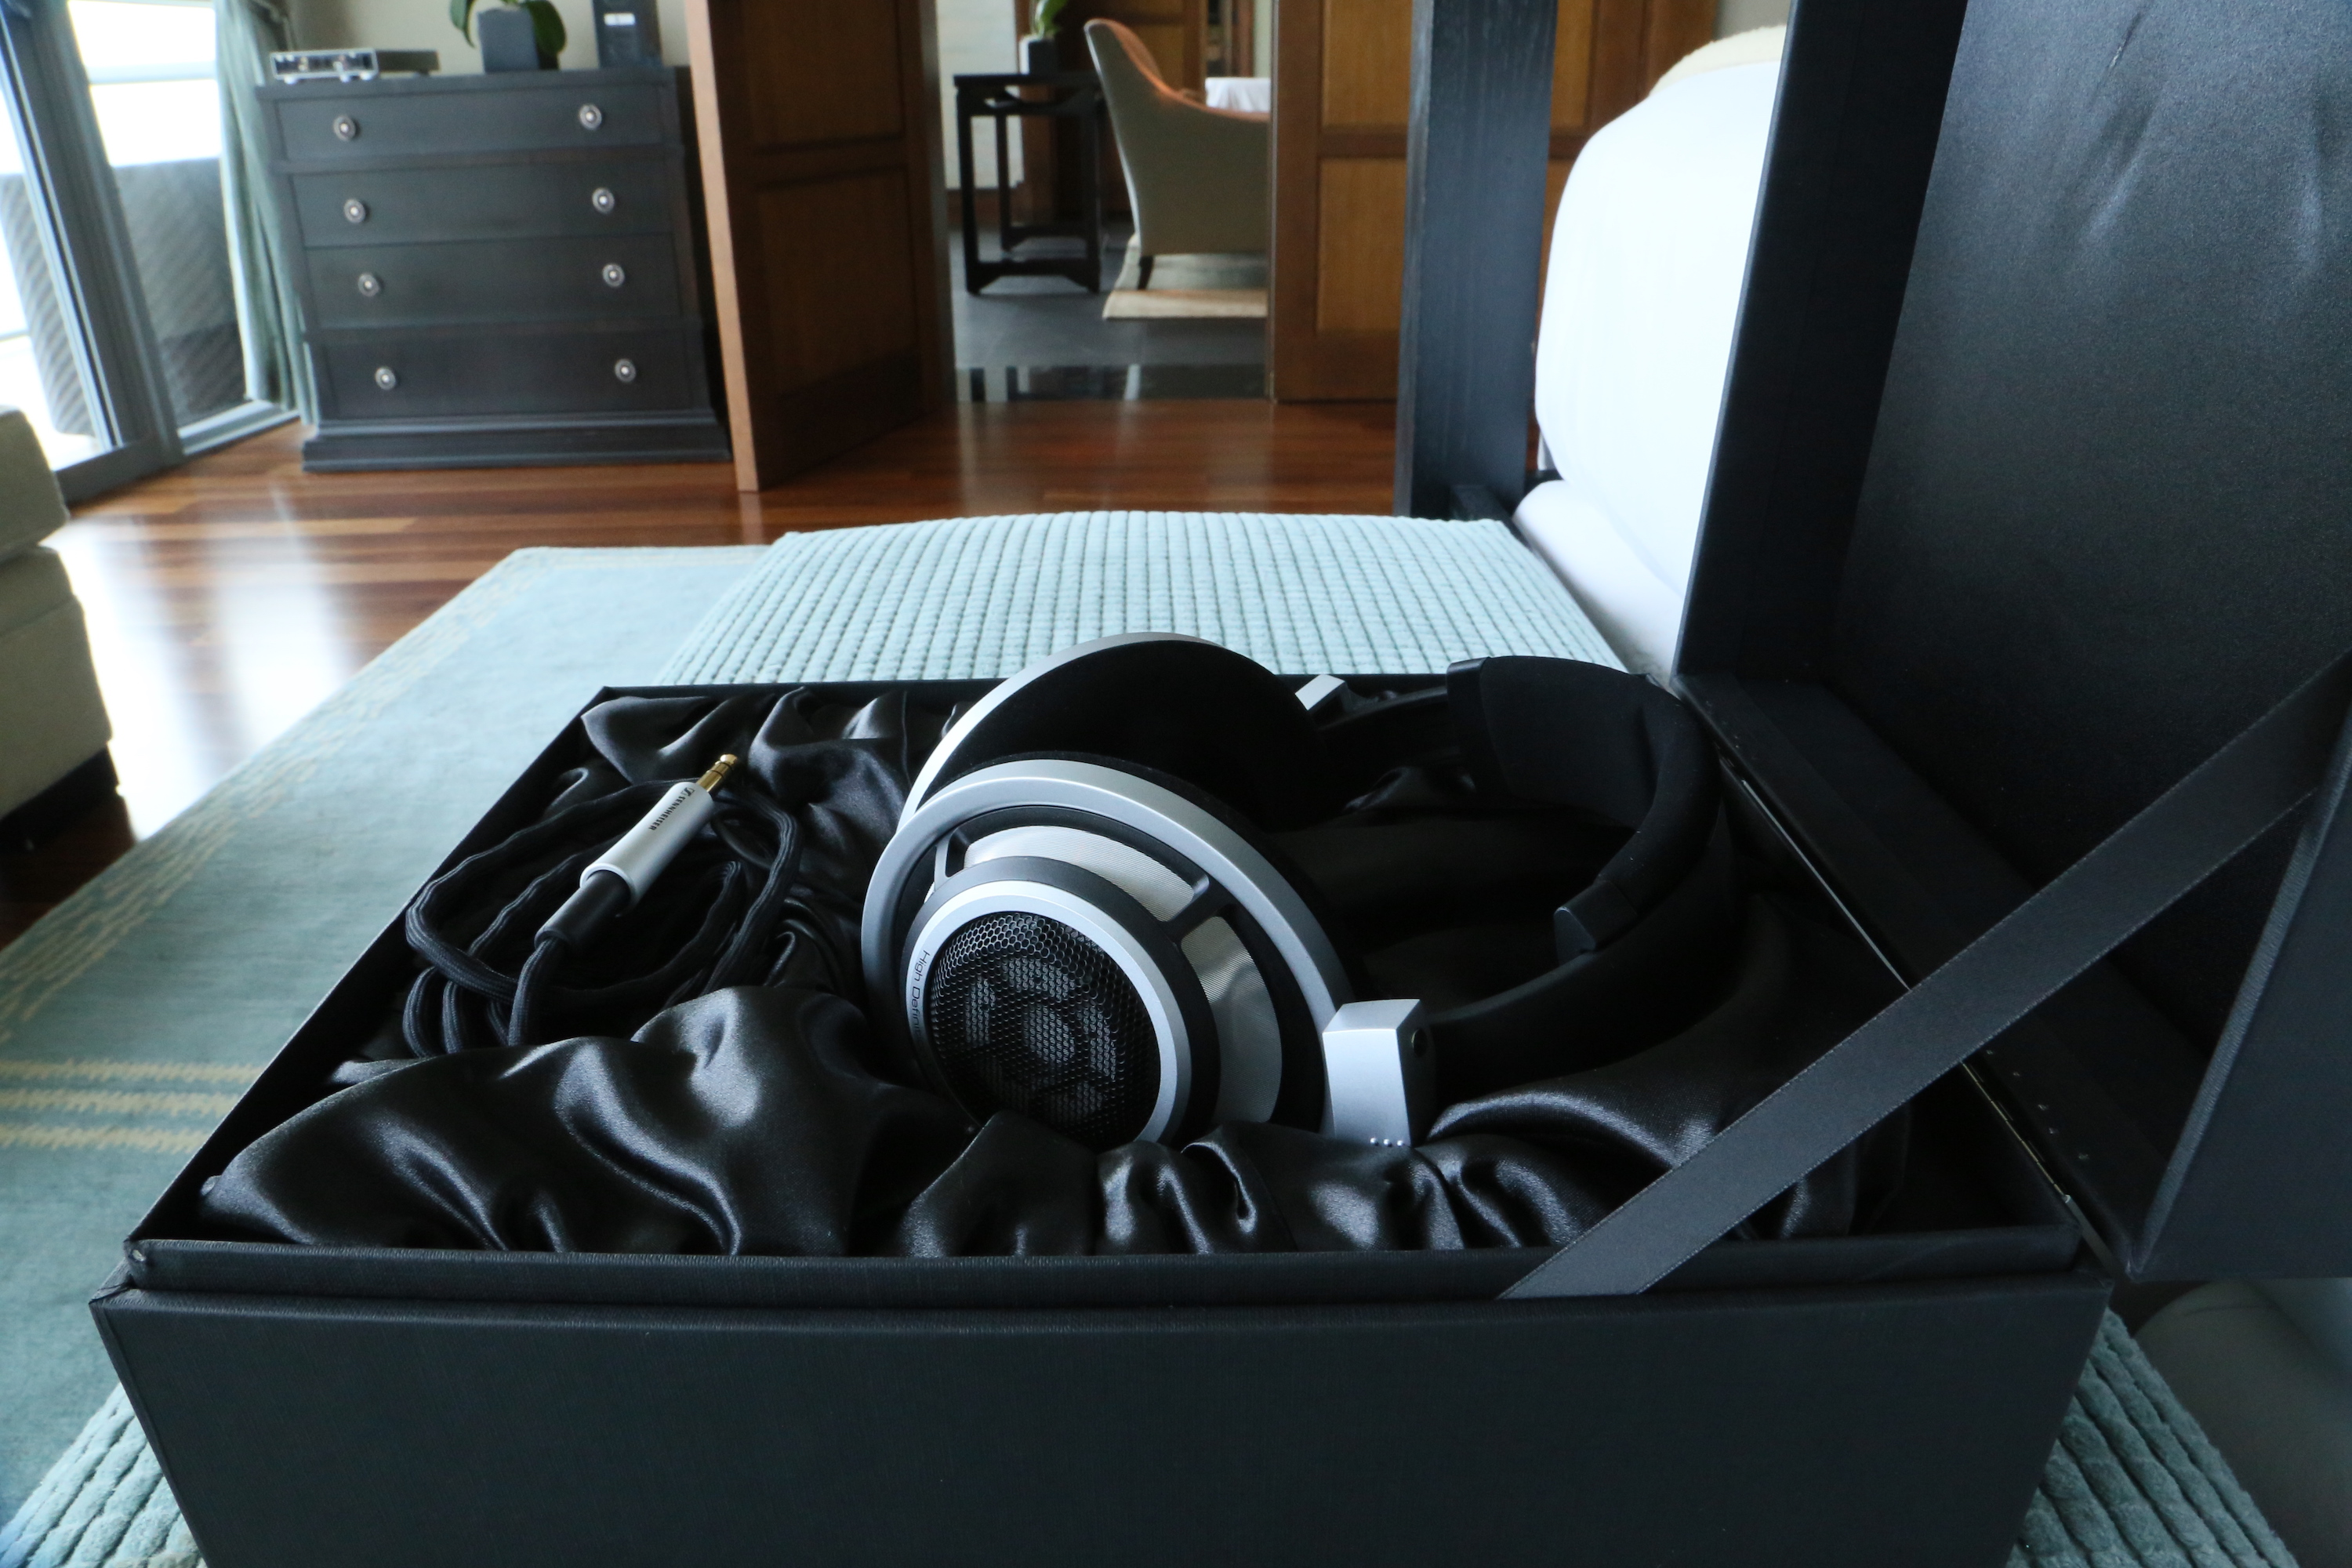 Sennheiser brings high-end listening experience to The Setai